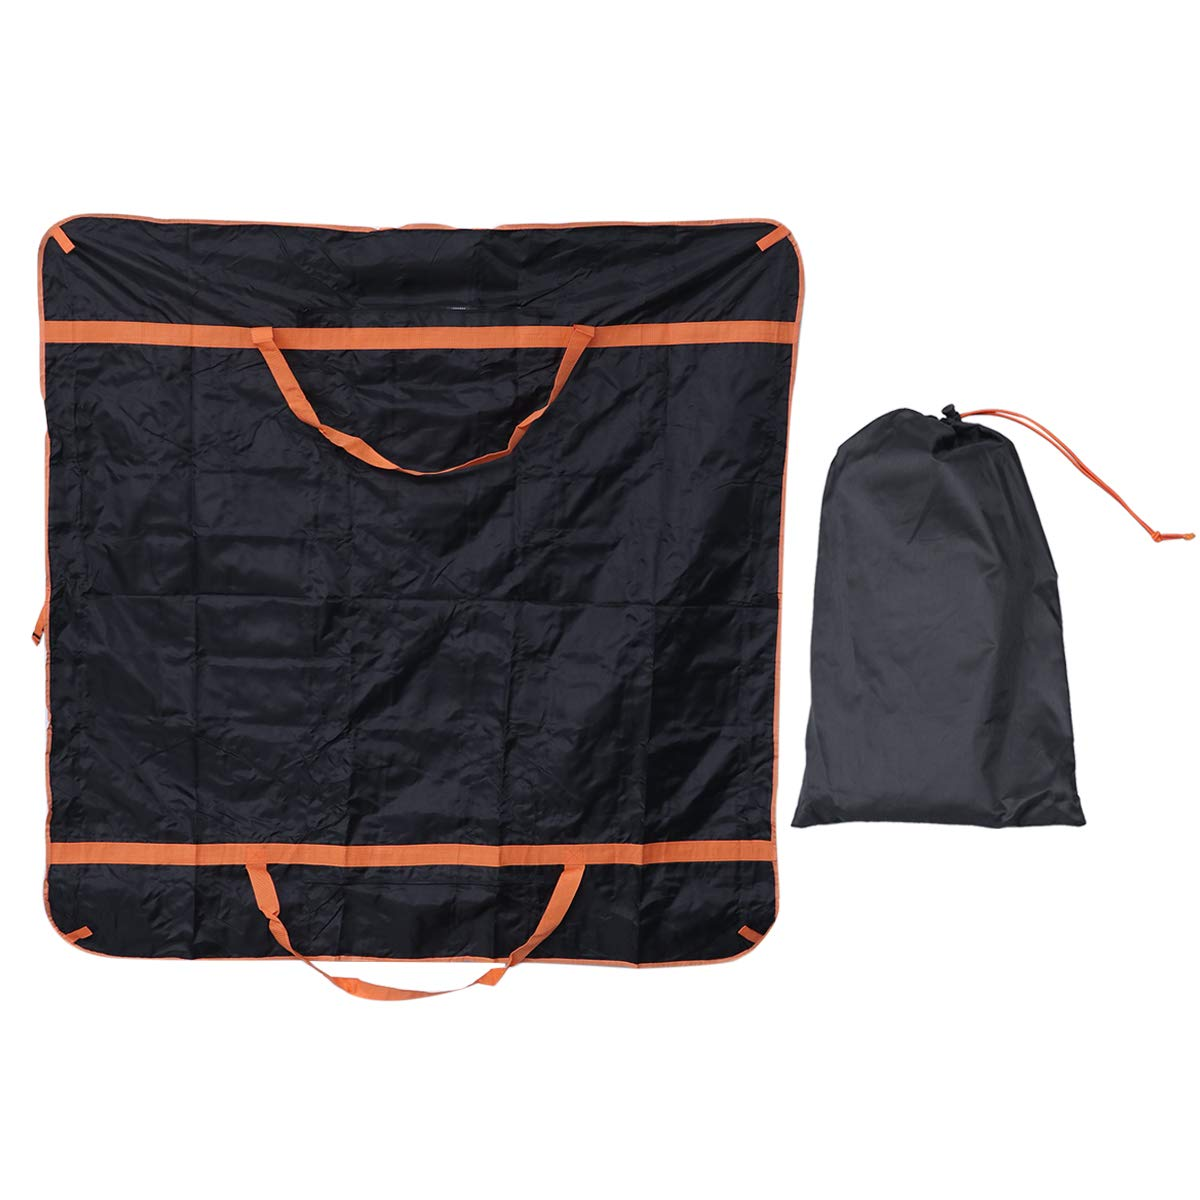 Vosarea Waterproof Tent Storage Bag Dampproof Mat Foldable Multifunction for Camping Outdoor(Black)